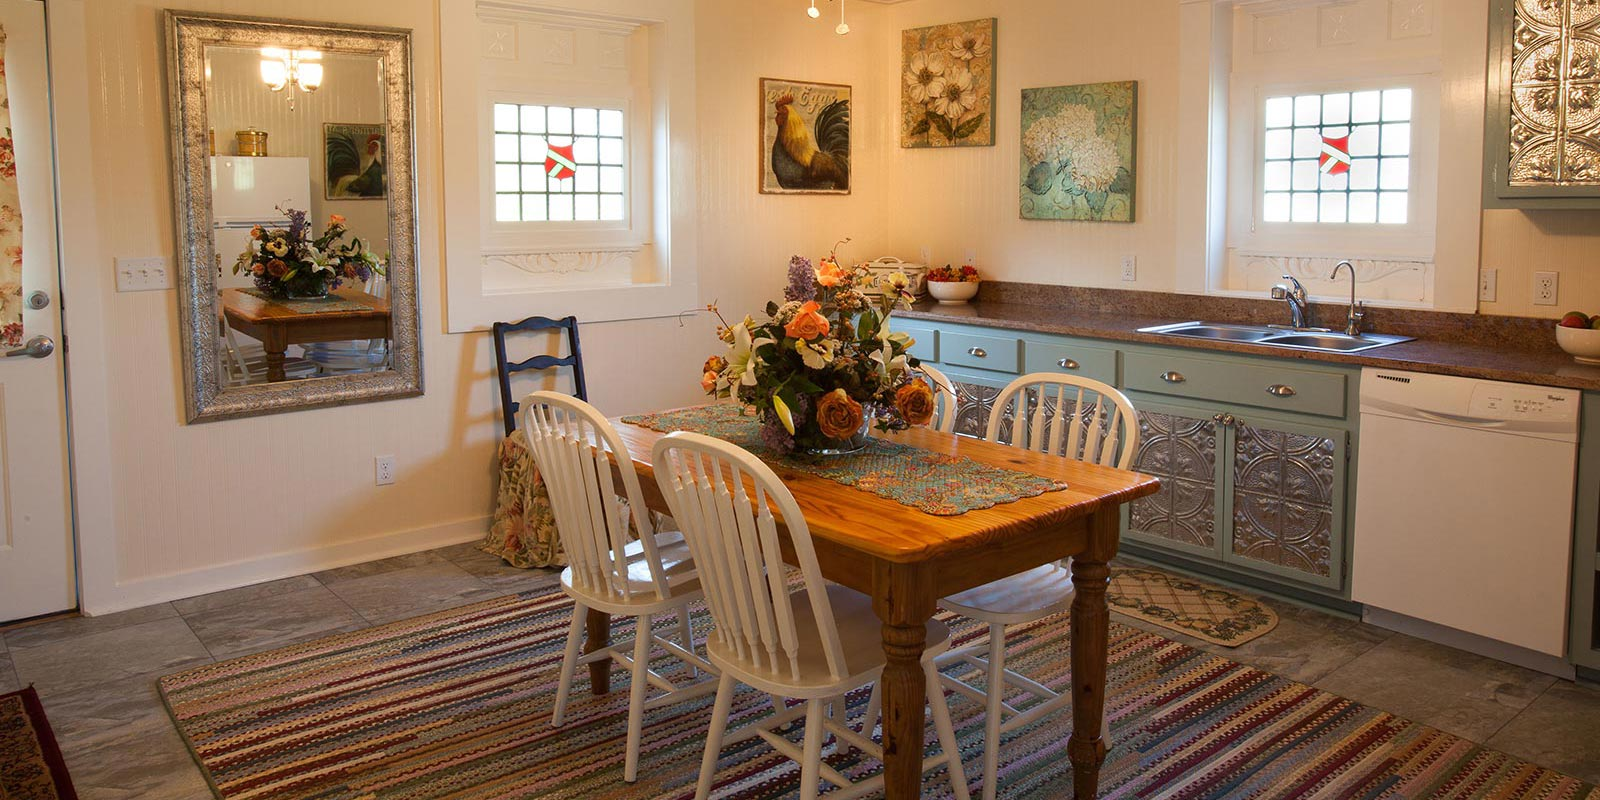 suites property bed in fredericksburg and fbg breakfast bakery lodging bb b